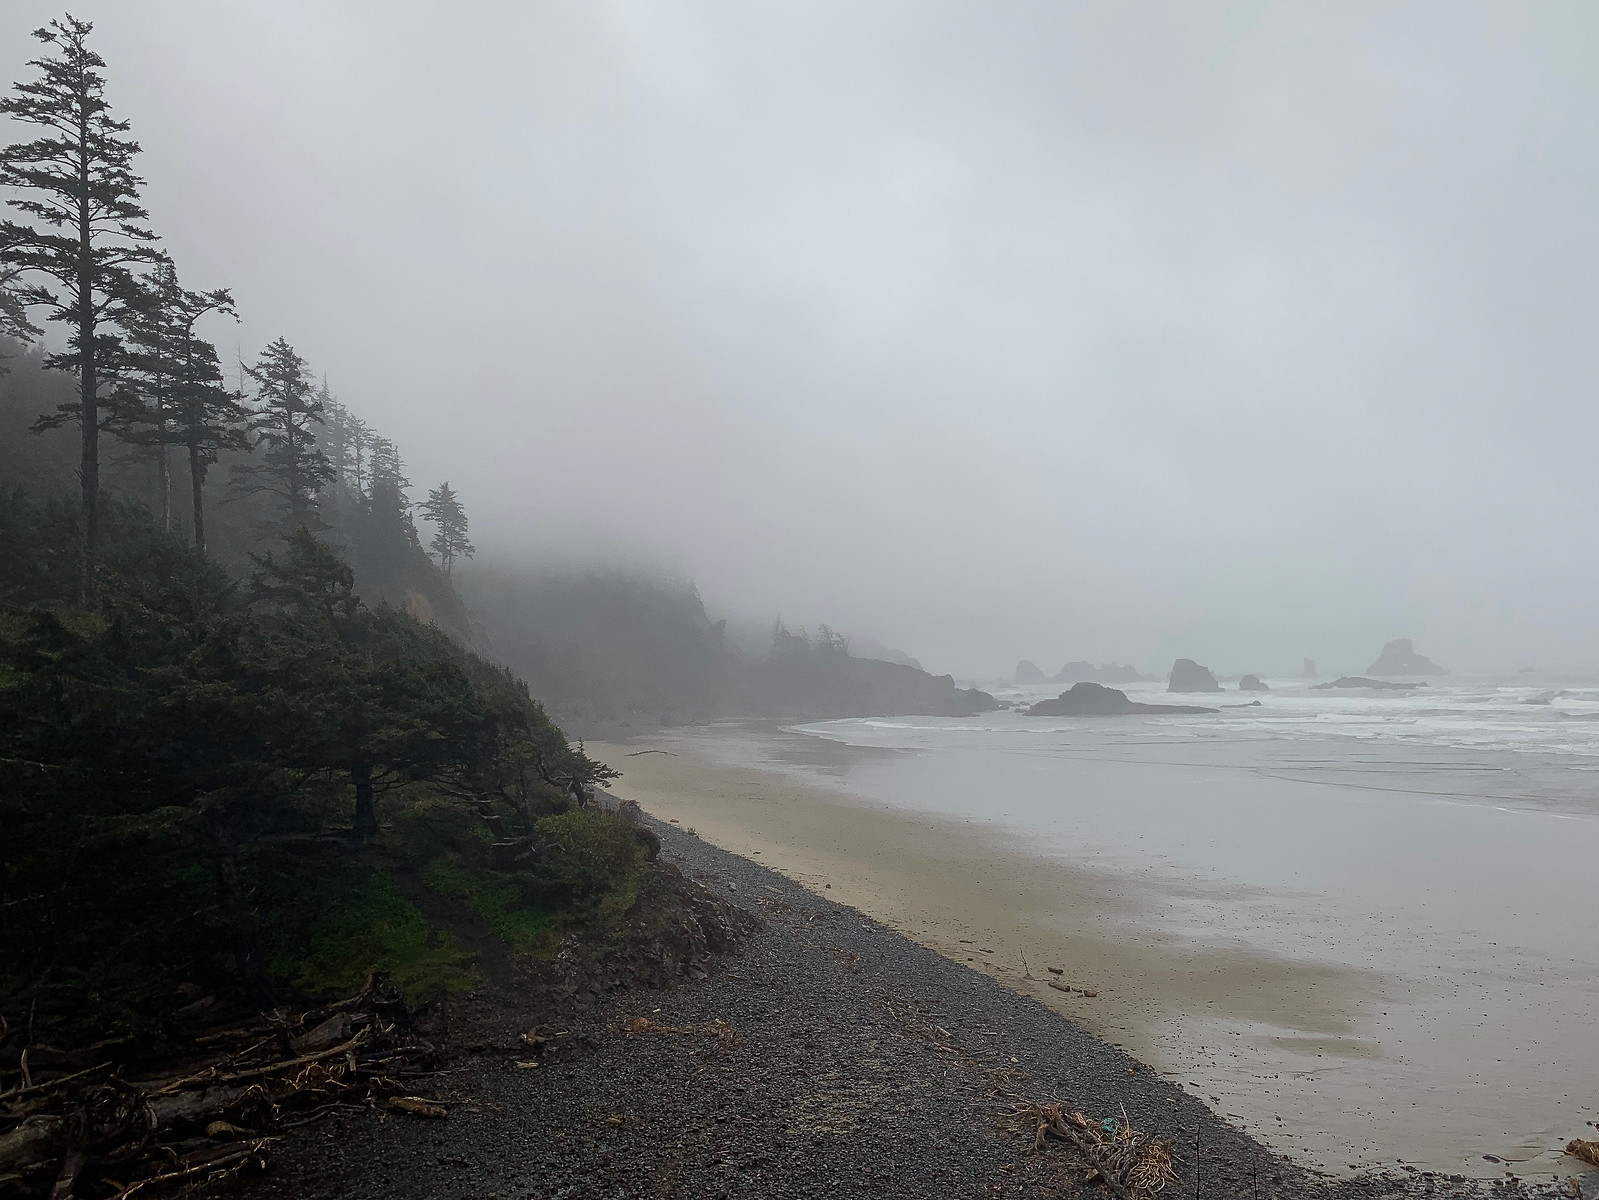 Misty low tide scene. View to the south. Forest on the right, surf and offshore rocks stretching to the left.